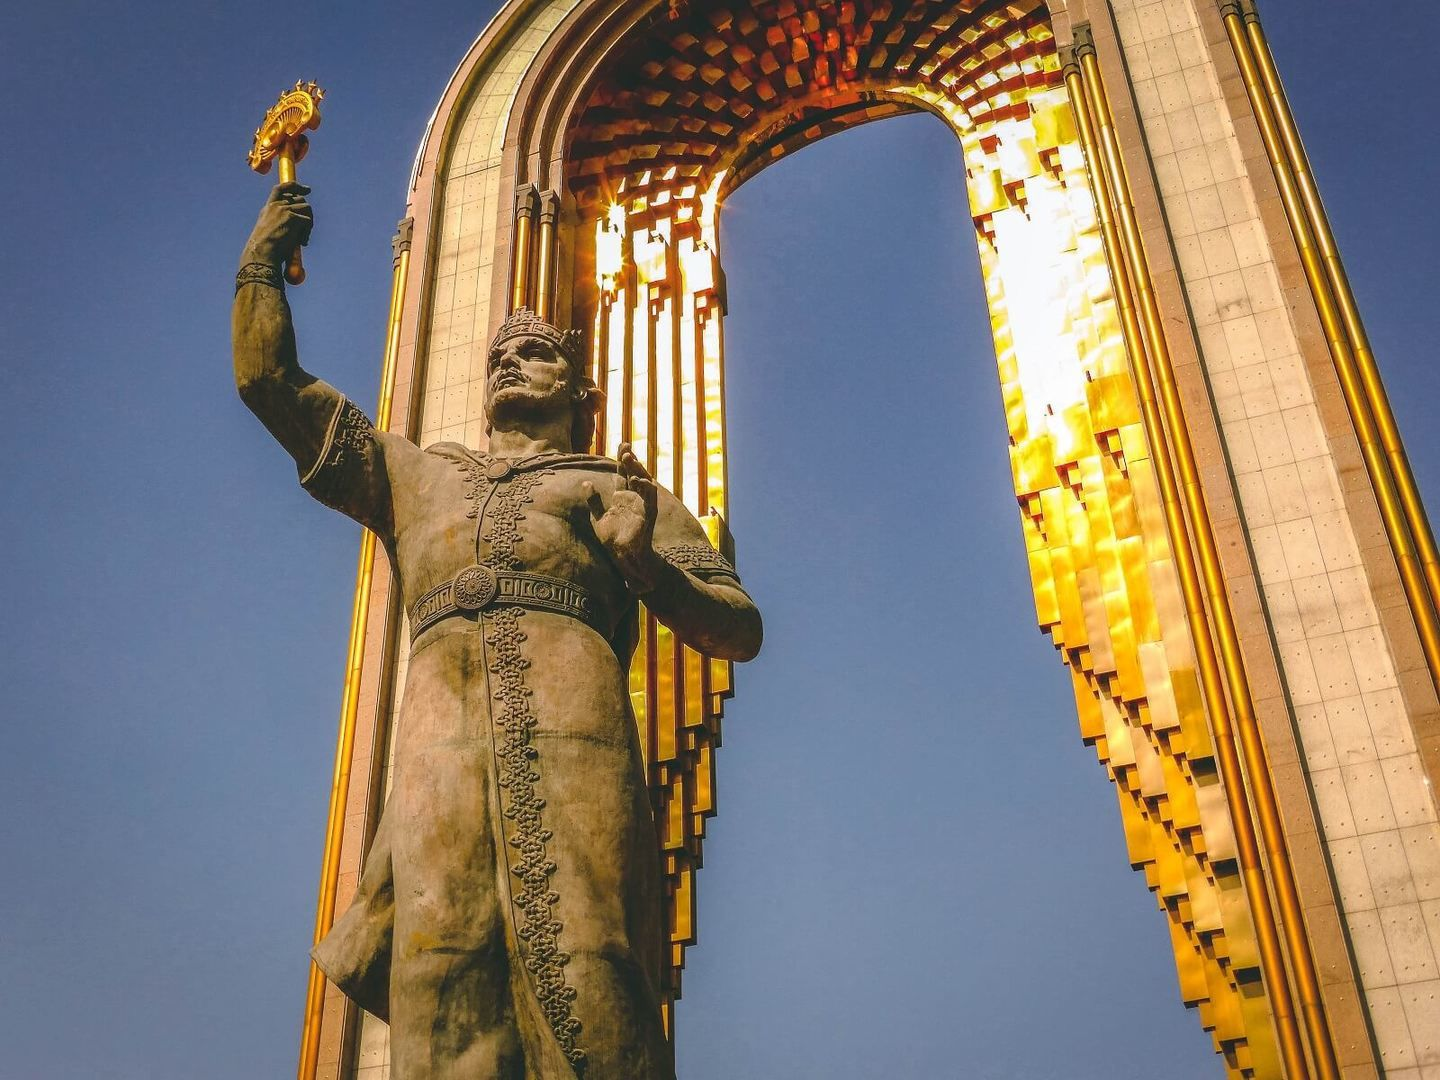 Best of Central Asia Tour - Somoni Monument in Dushanbe